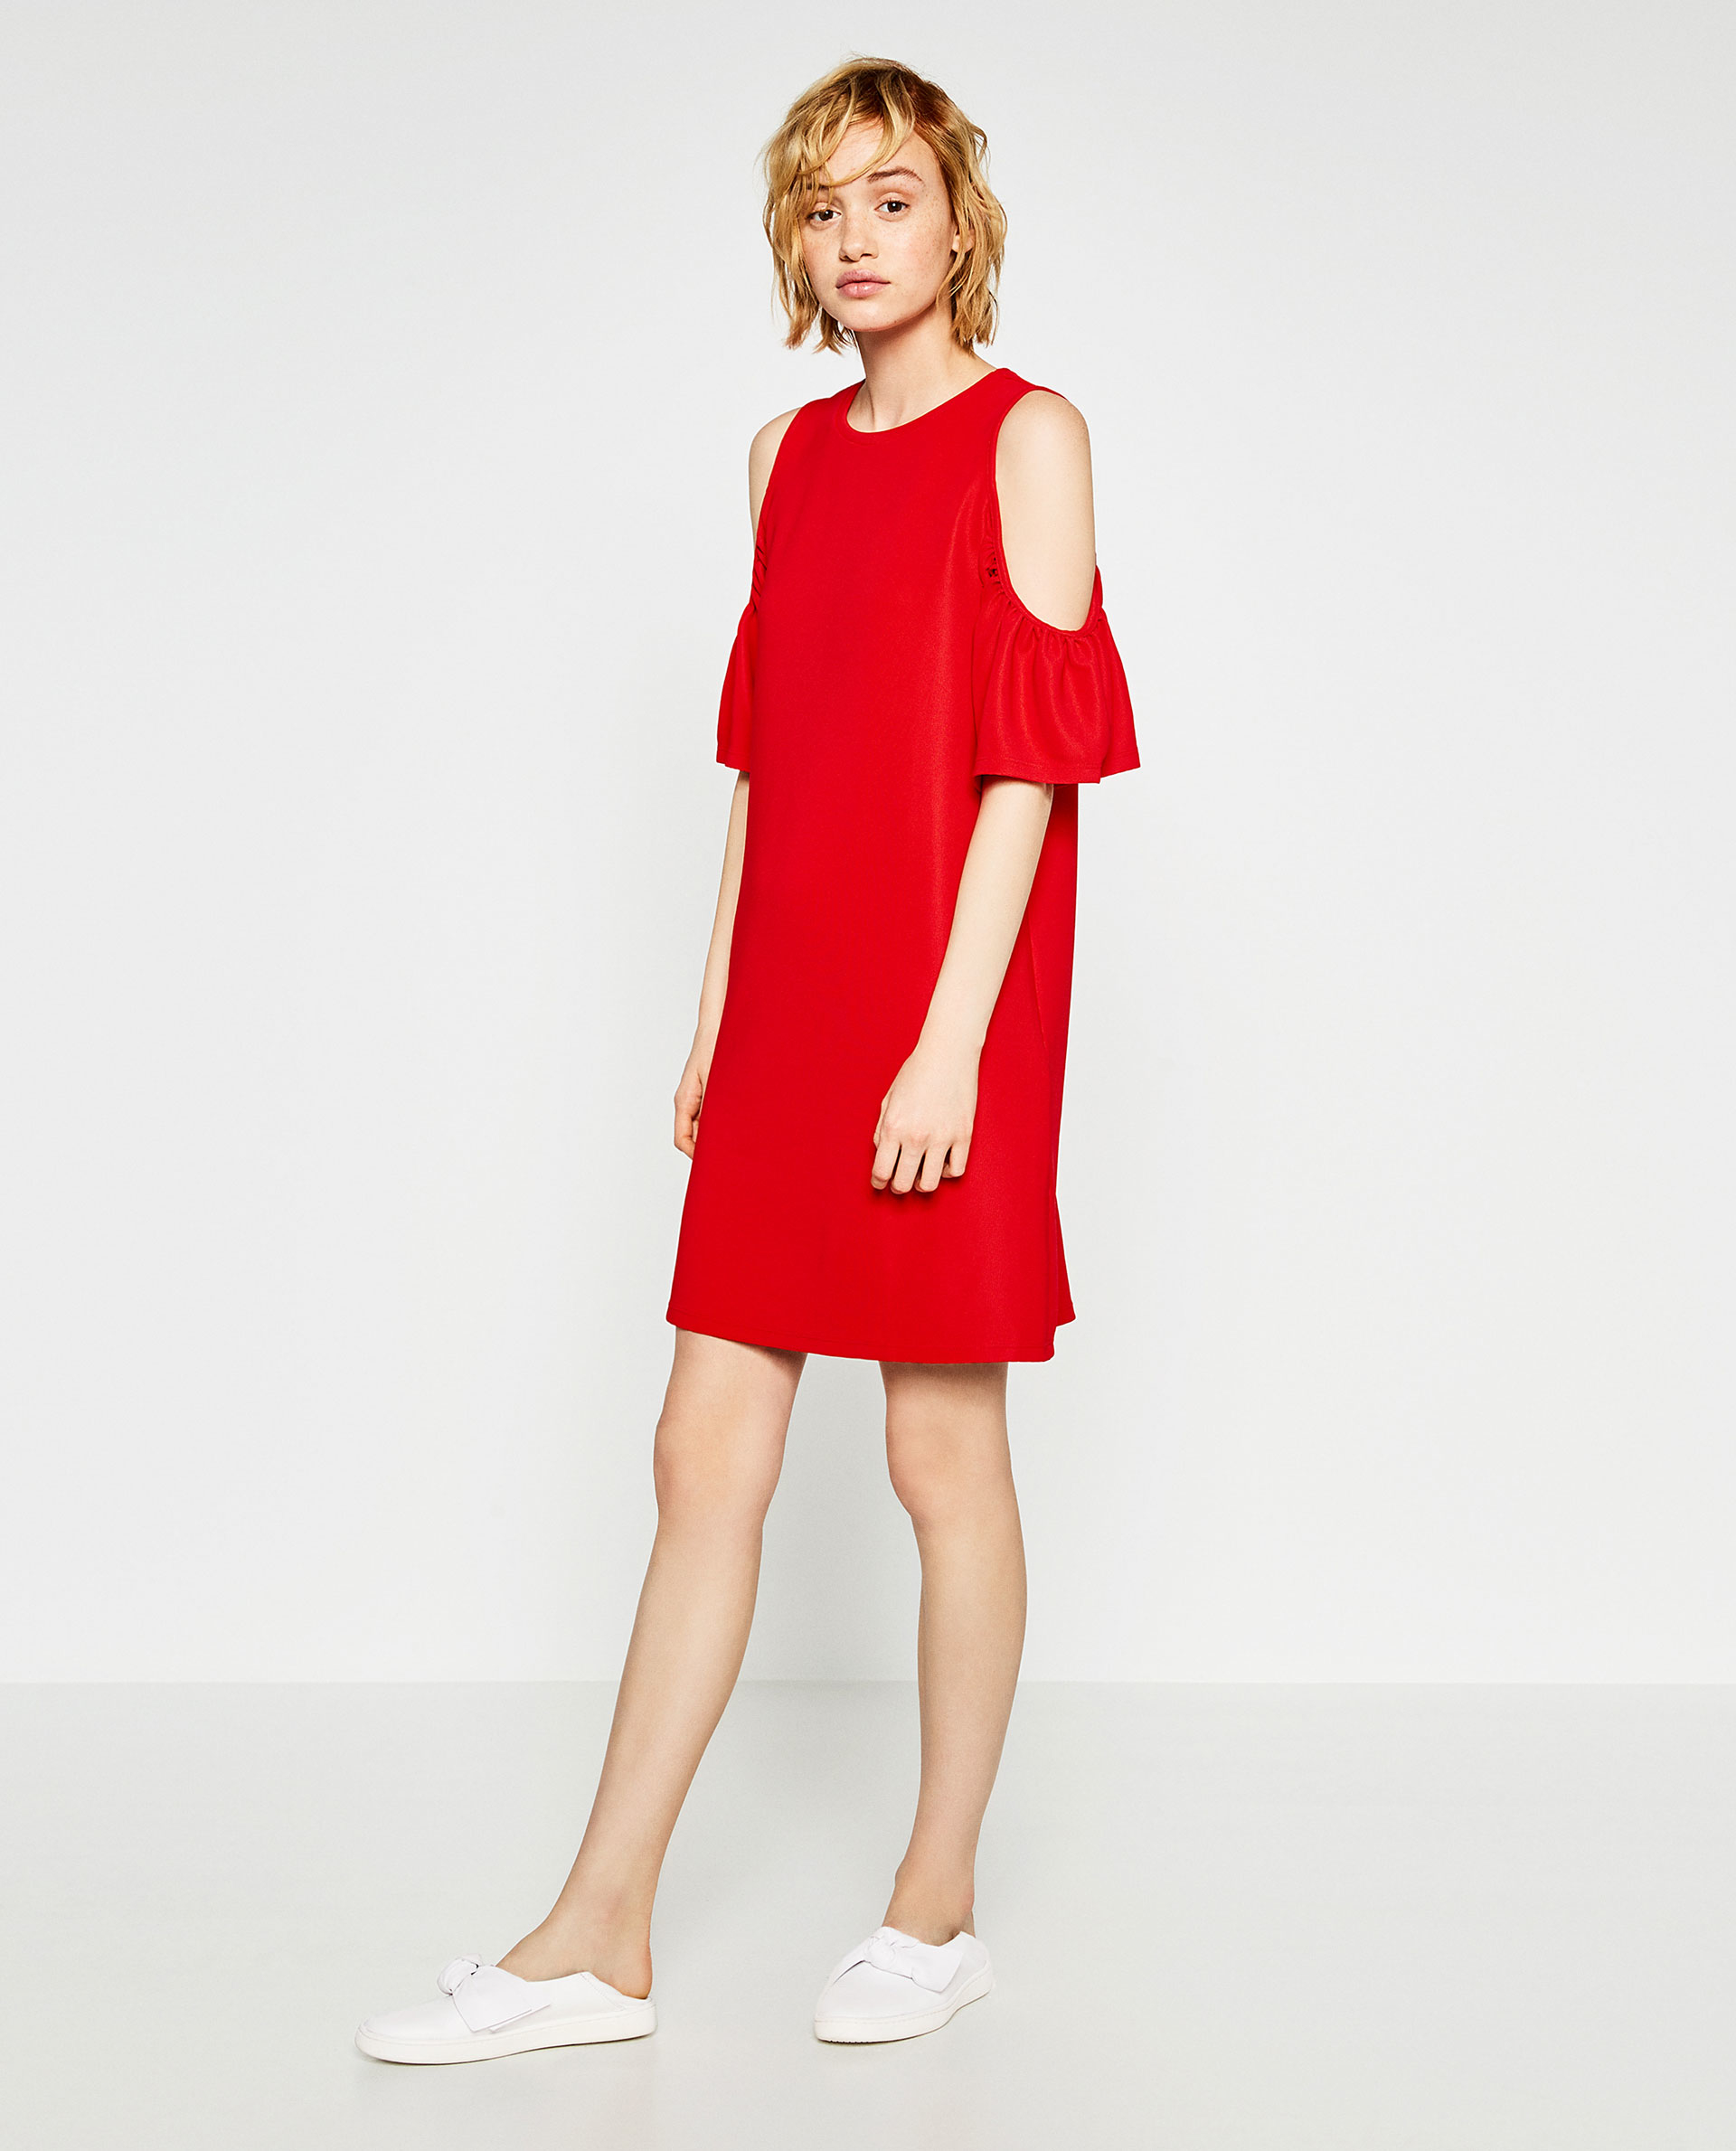 Zara Dress With Frills in Red